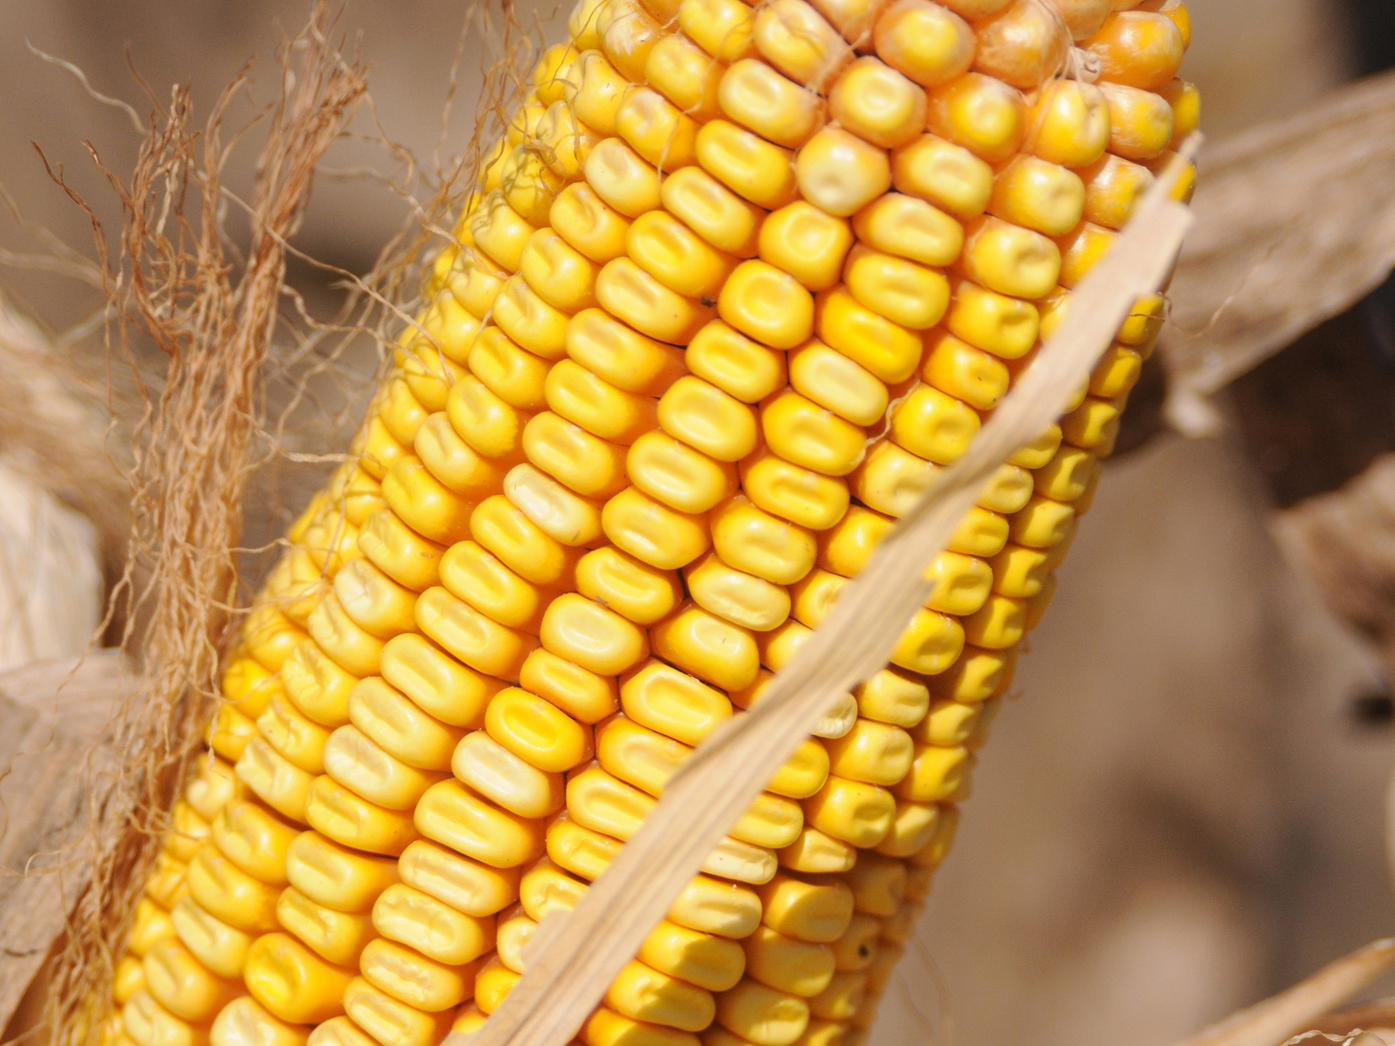 The 2012 harvest is under way on Mississippi's 840,000 acres of corn with most growers reporting record or near-record yields. The record, 148 bushels per acre, was set in 2007. (File photo/MSU Ag Communications)